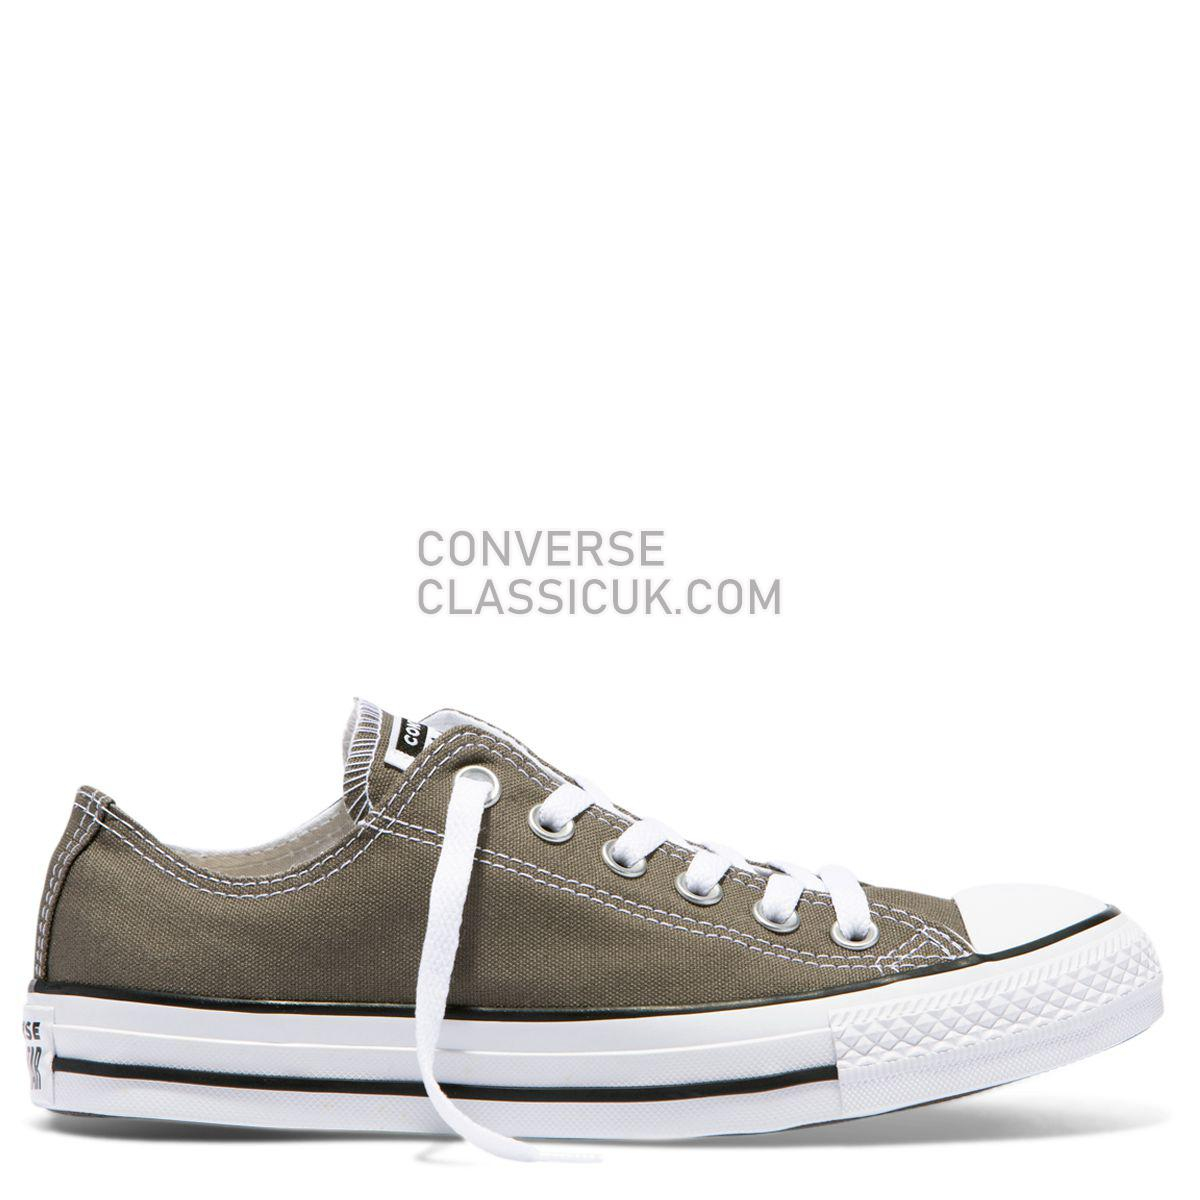 Converse Chuck Taylor All Star Classic Colour Low Top Charcoal Mens Womens Unisex 1J794 Charcoal Shoes